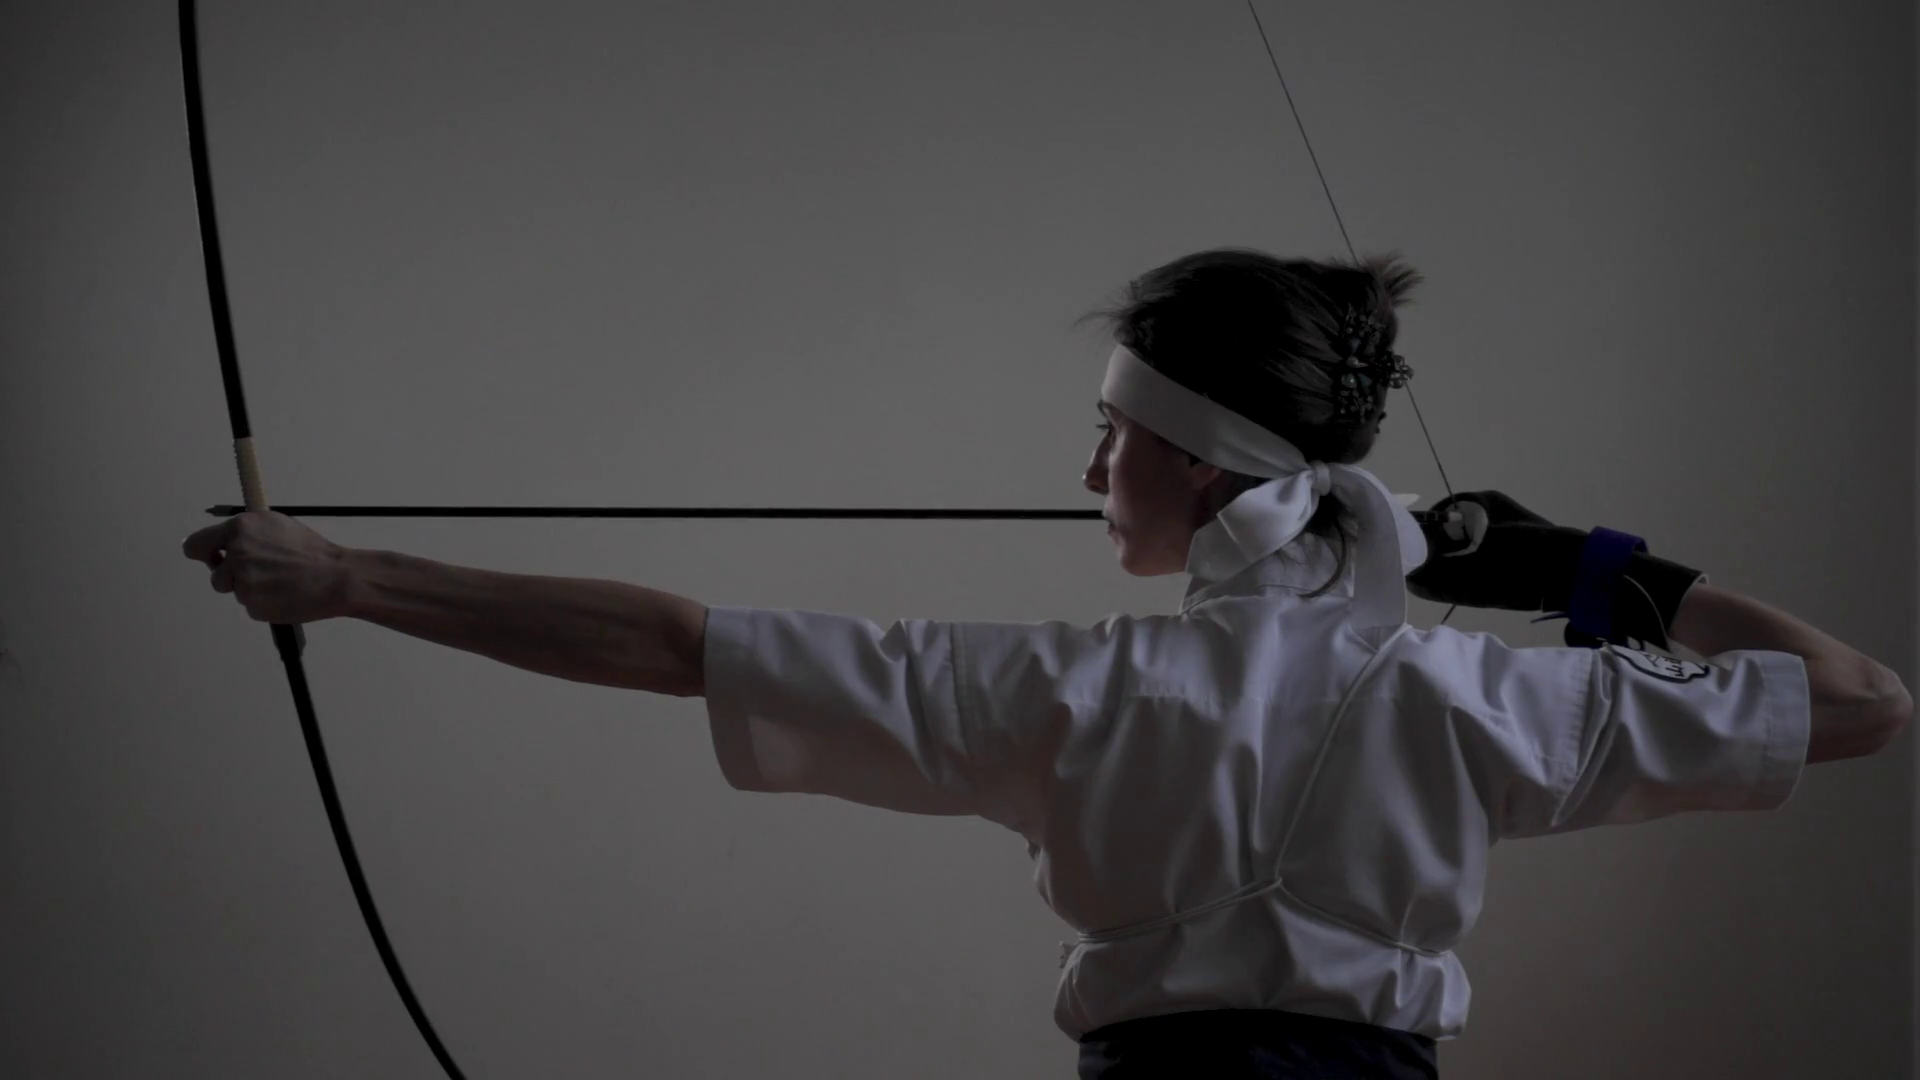 videoblocks-woman-practicing-kyudo-bow-shooting_szp7y6mrg_thumbnail-full01.png